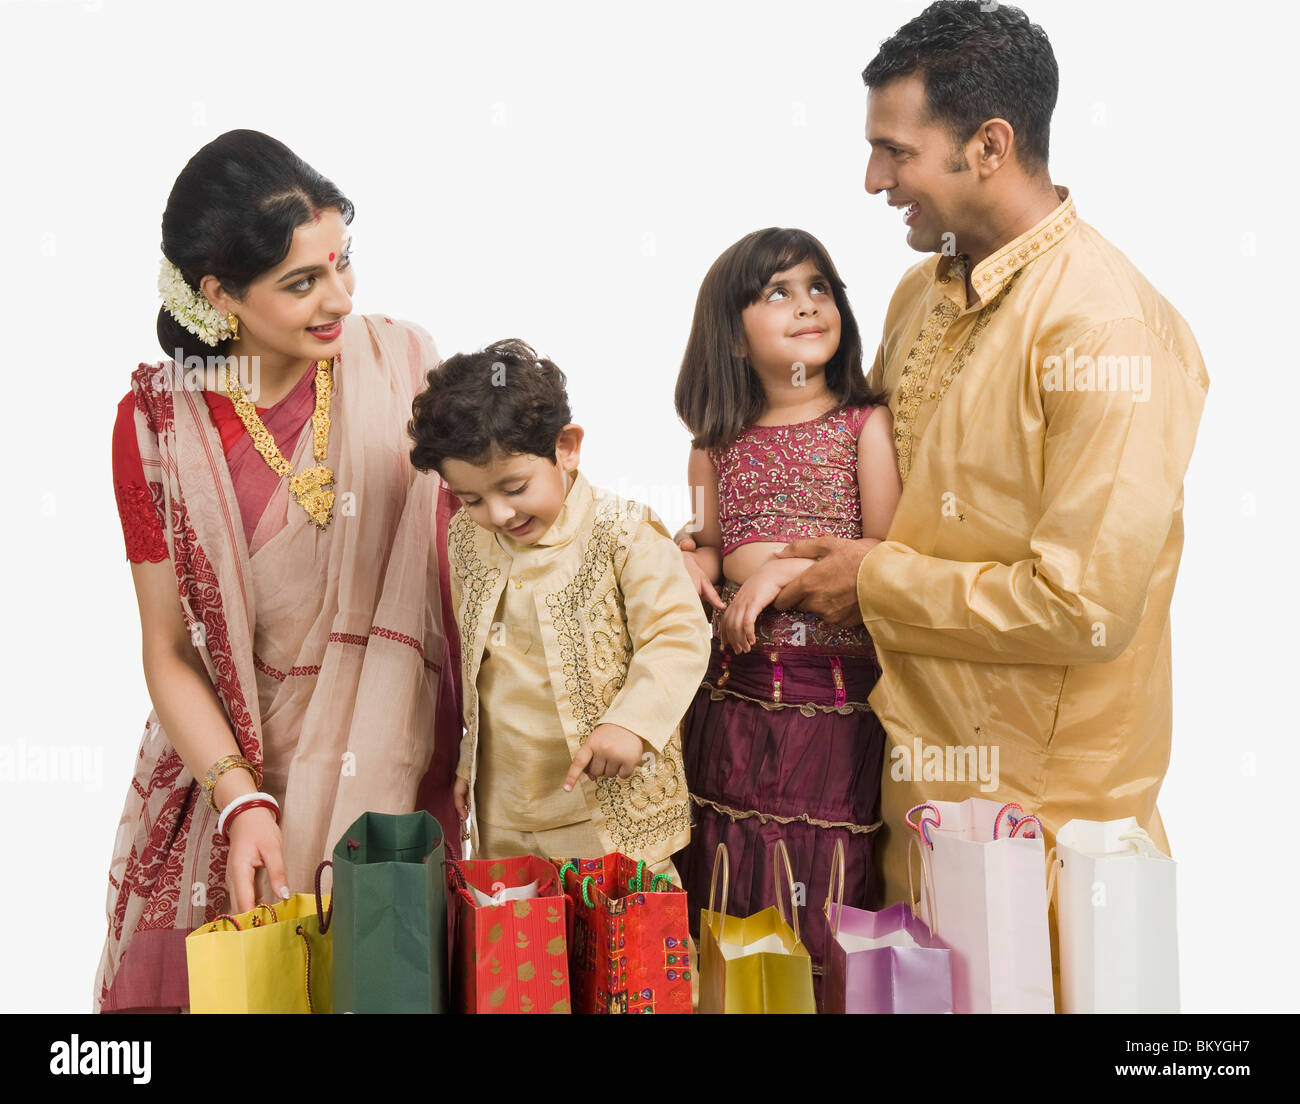 Household Stores: Family With Shopping Bags At Durga Puja Stock Photo